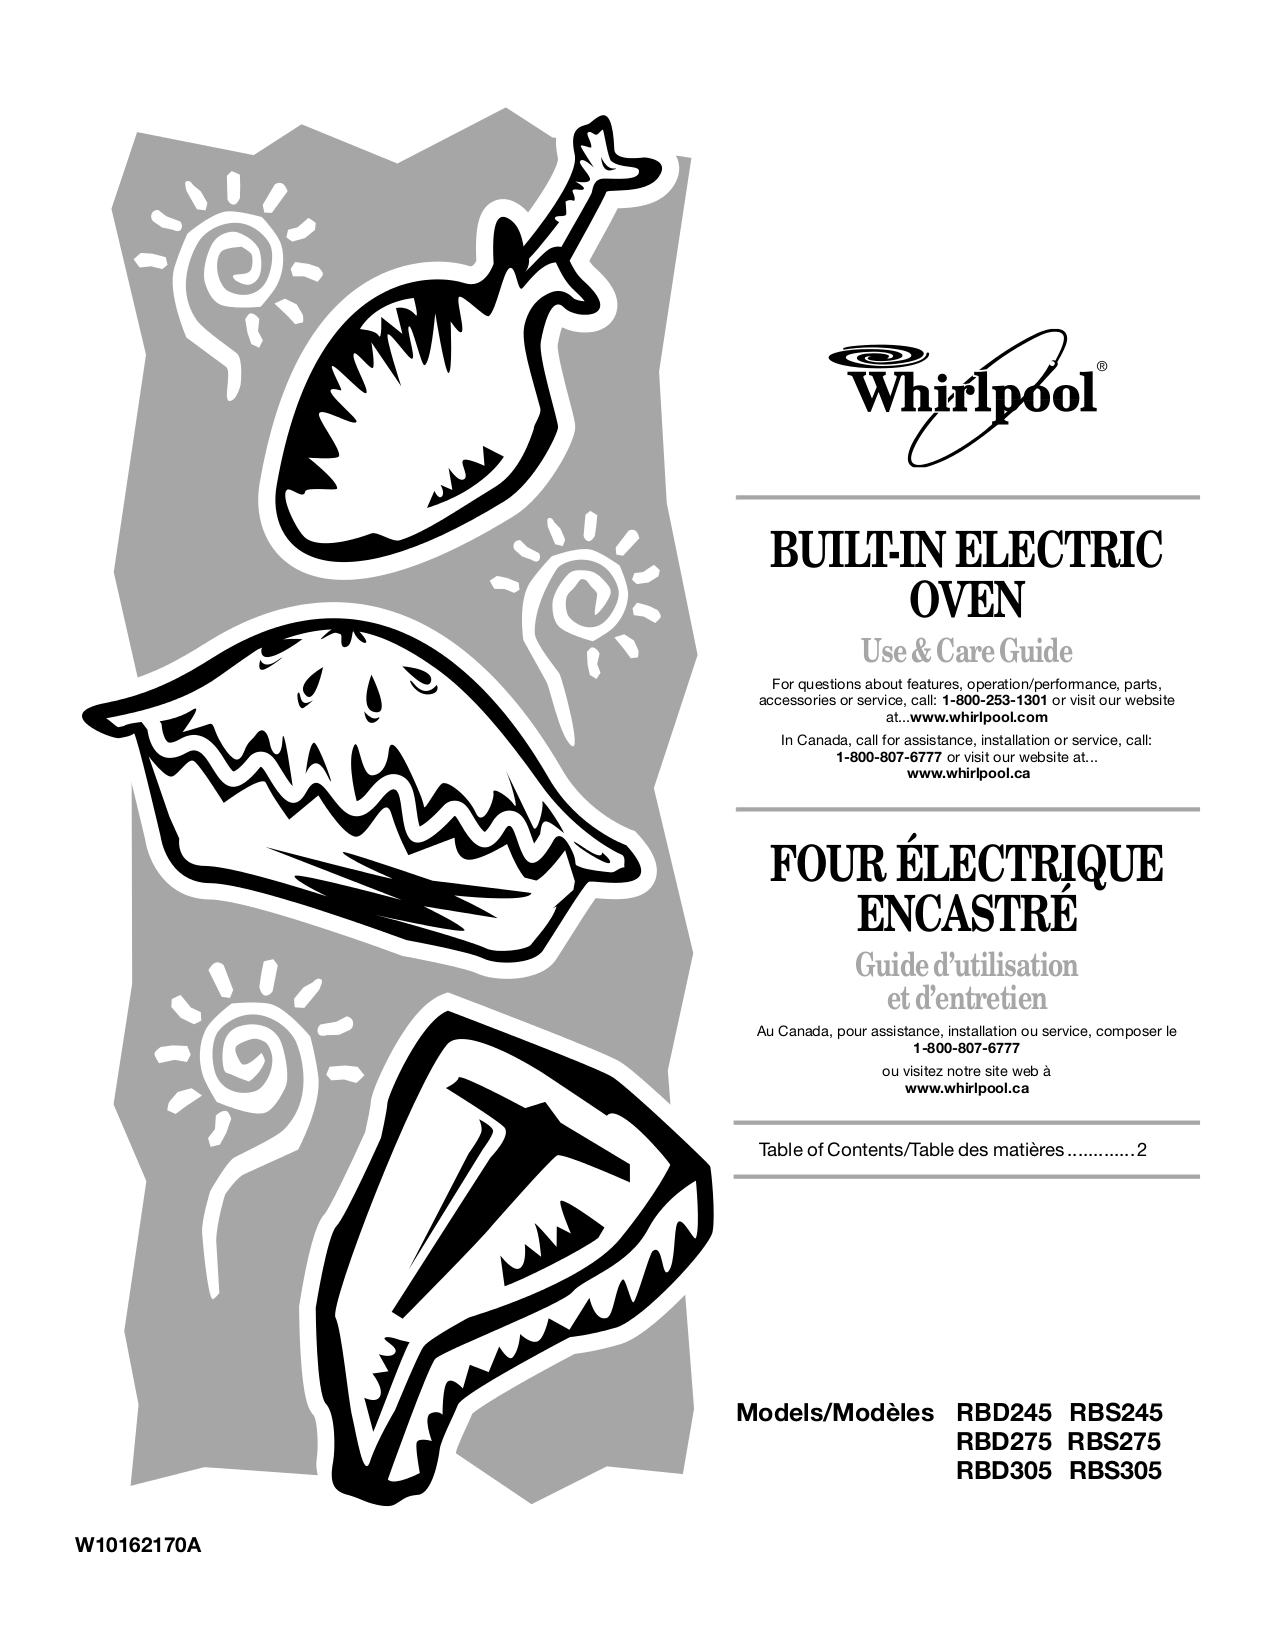 Whirlpool Oven Instruction Manual Wiring Diagram For Double Ovens